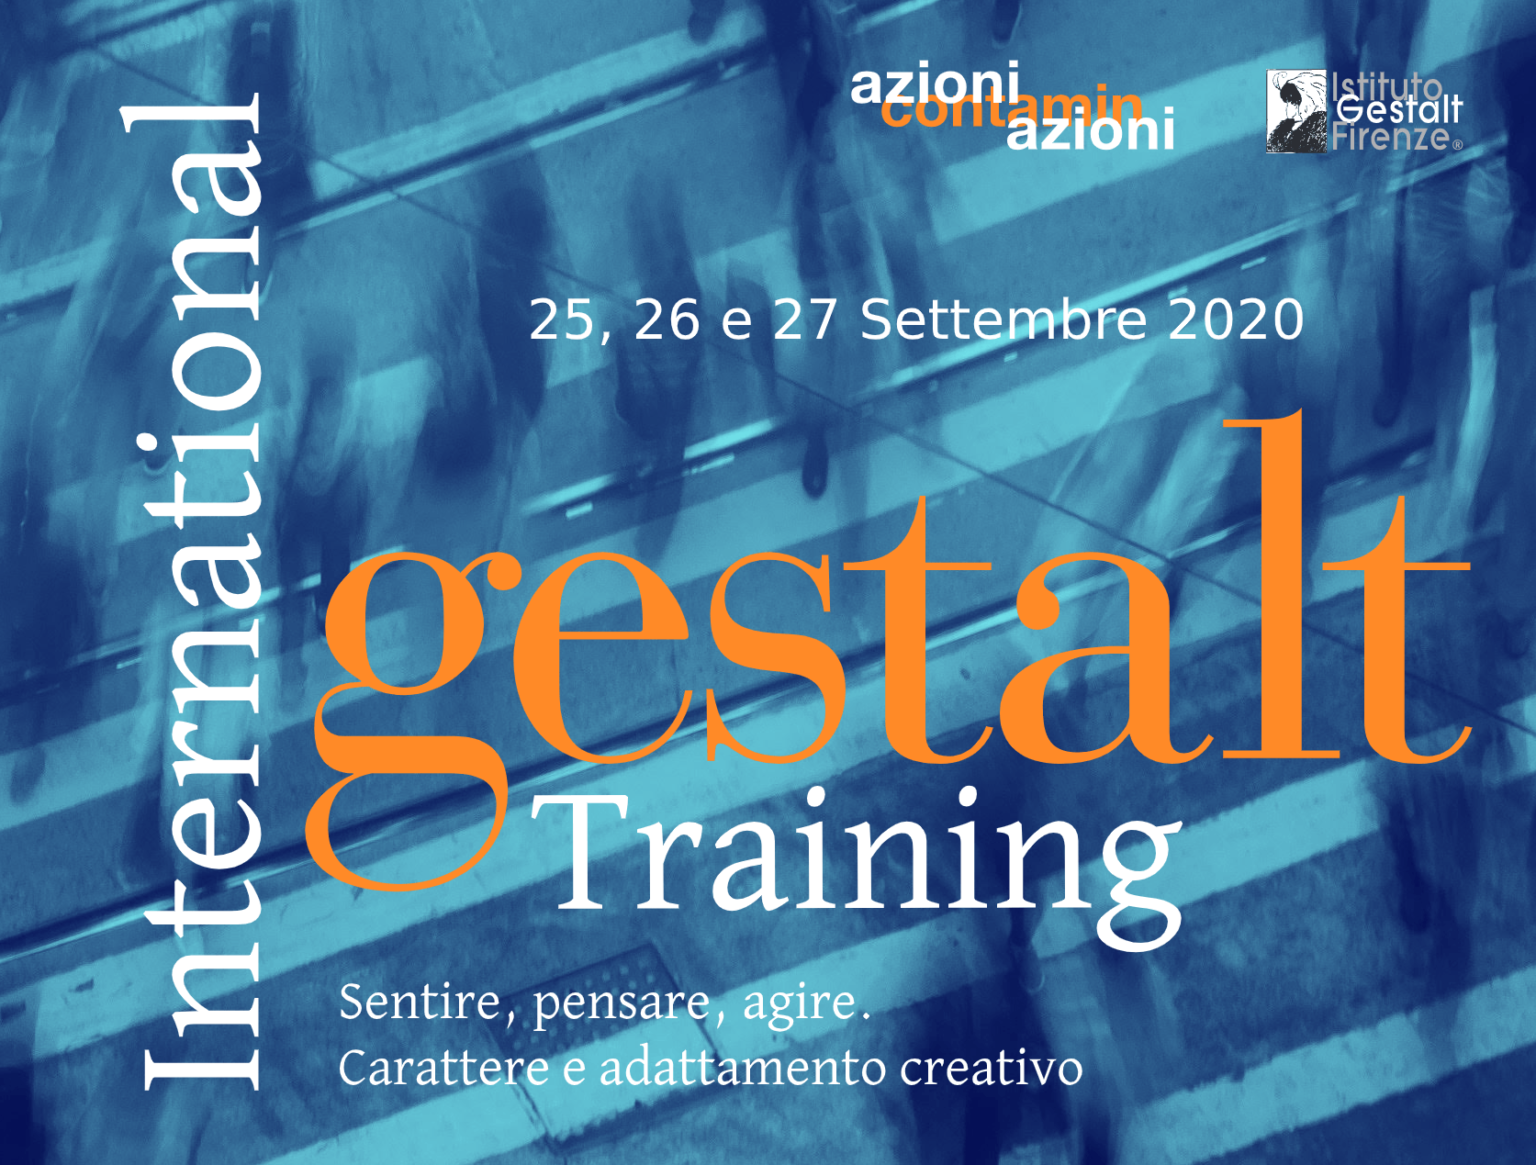 International Gestalt Training 2020